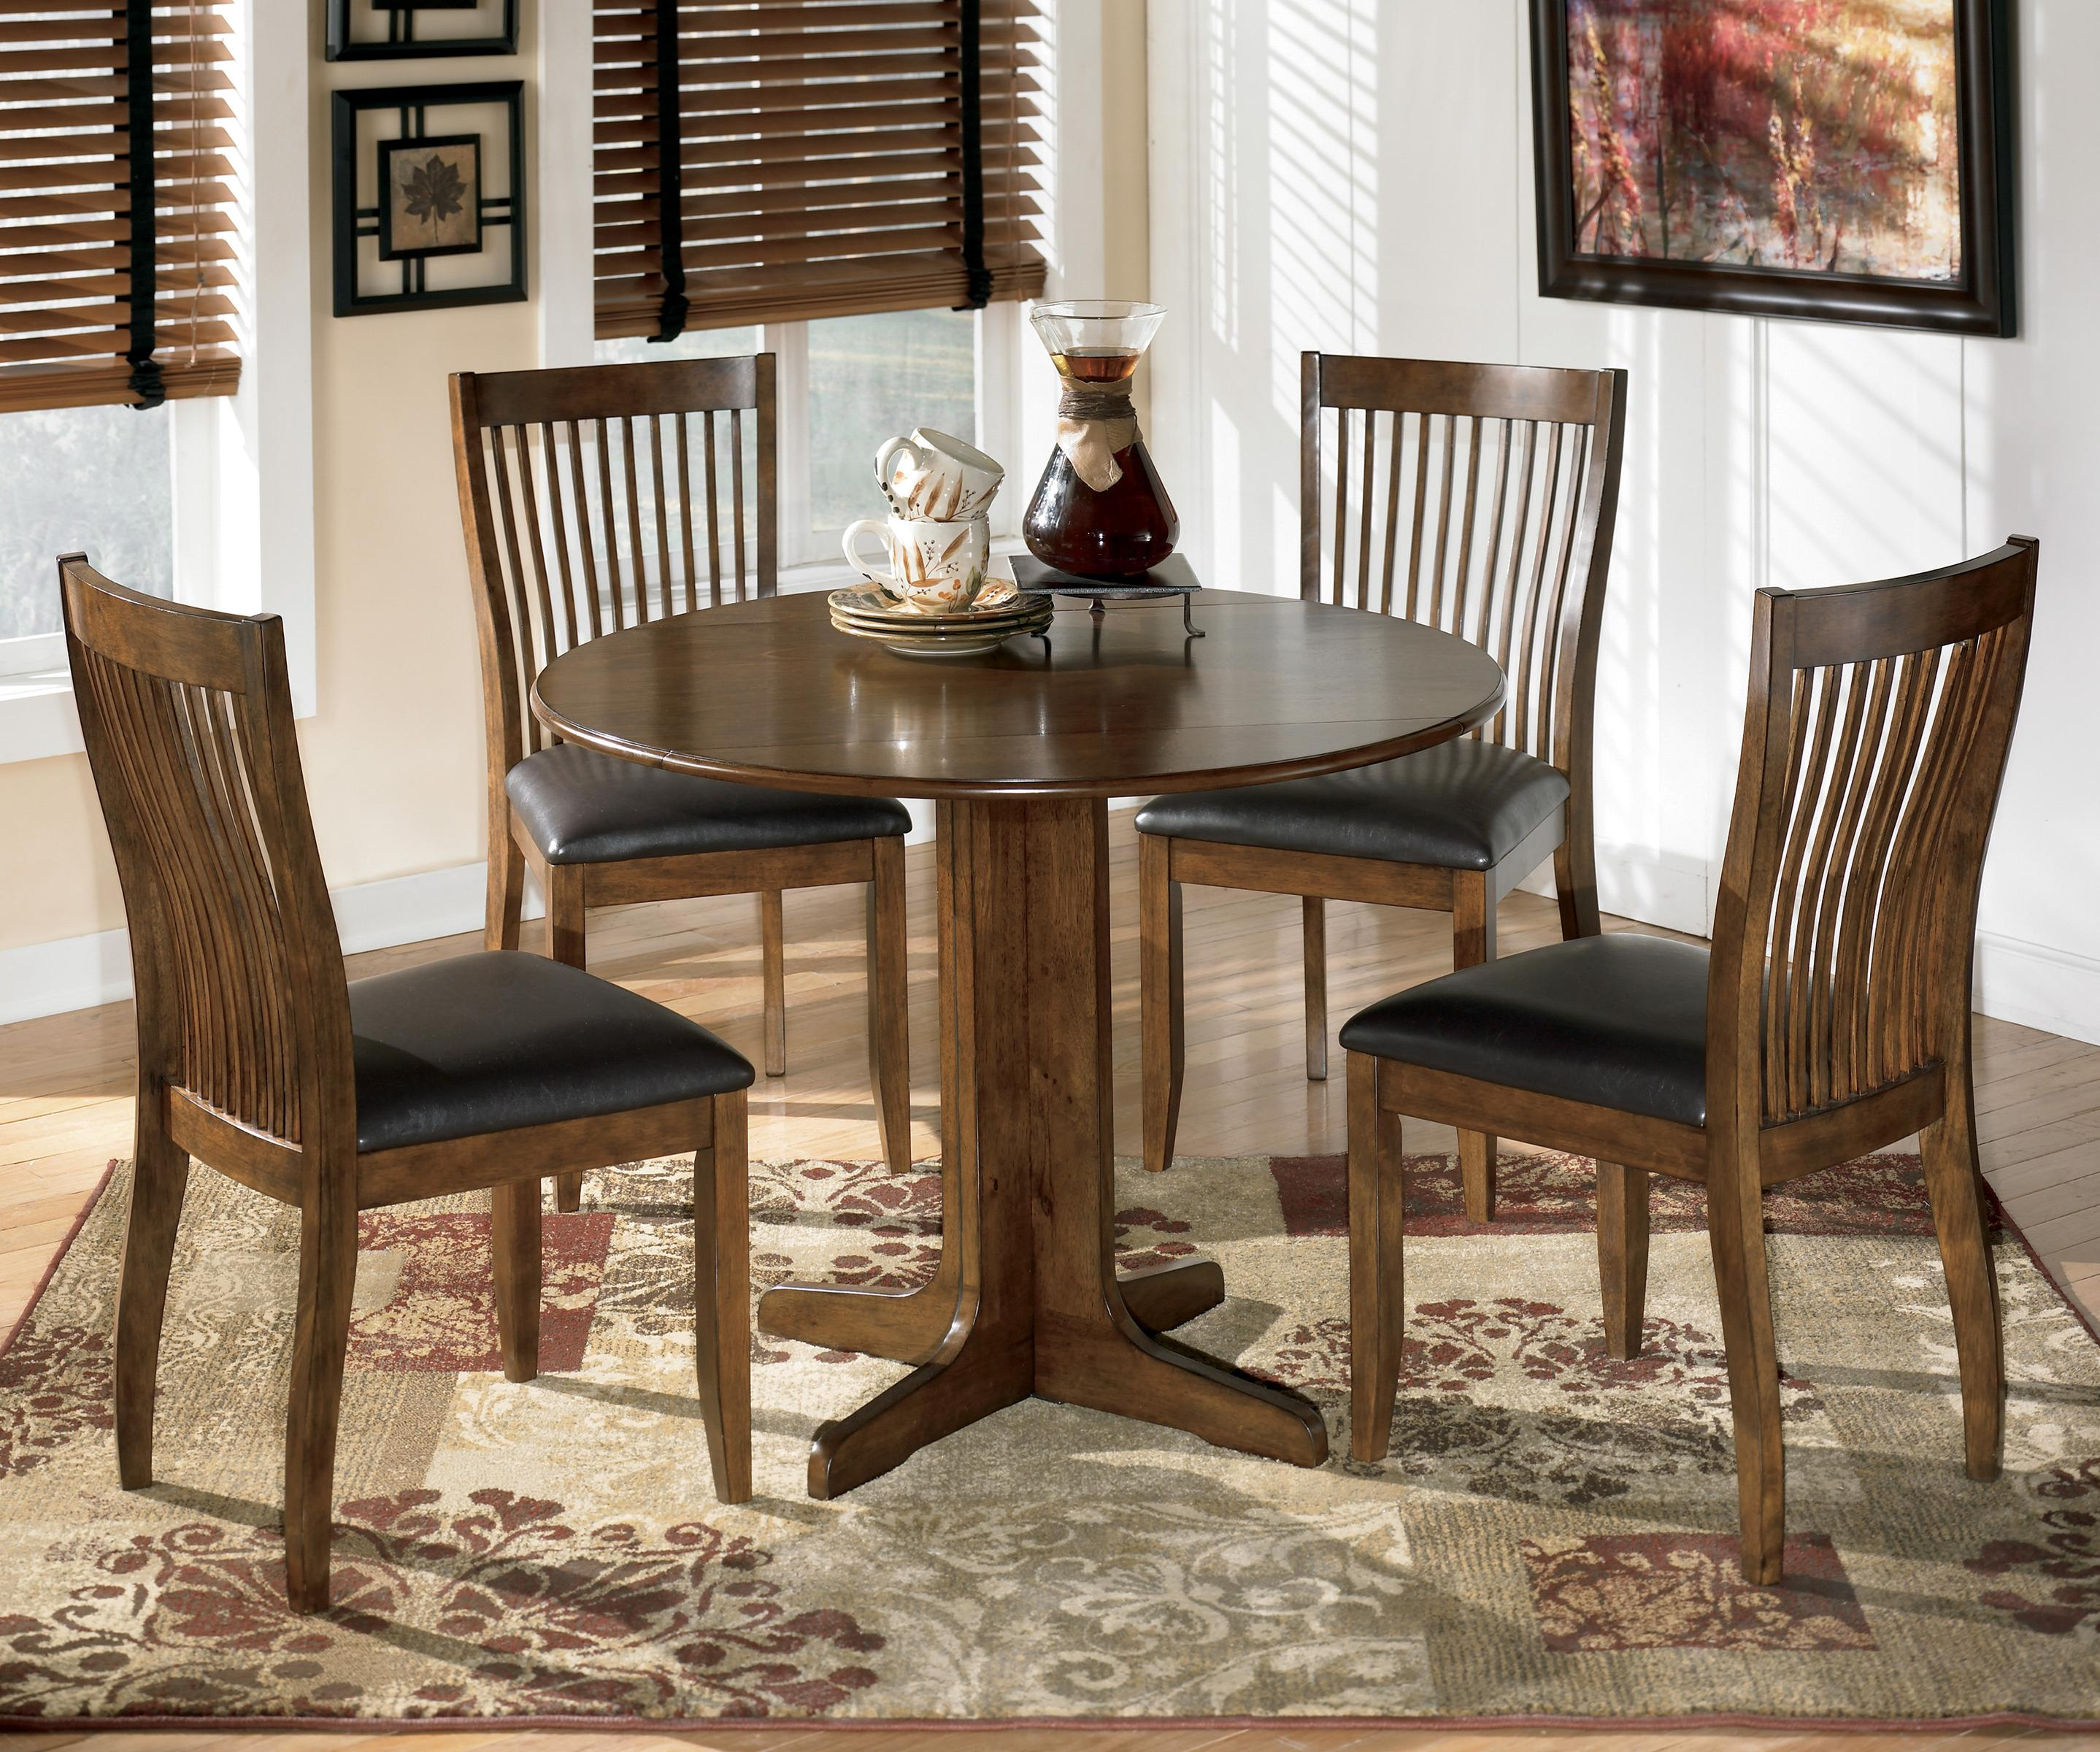 Round Dining Set With Leaf: Signature Design By Ashley Stuman 5-Piece Round Drop Leaf